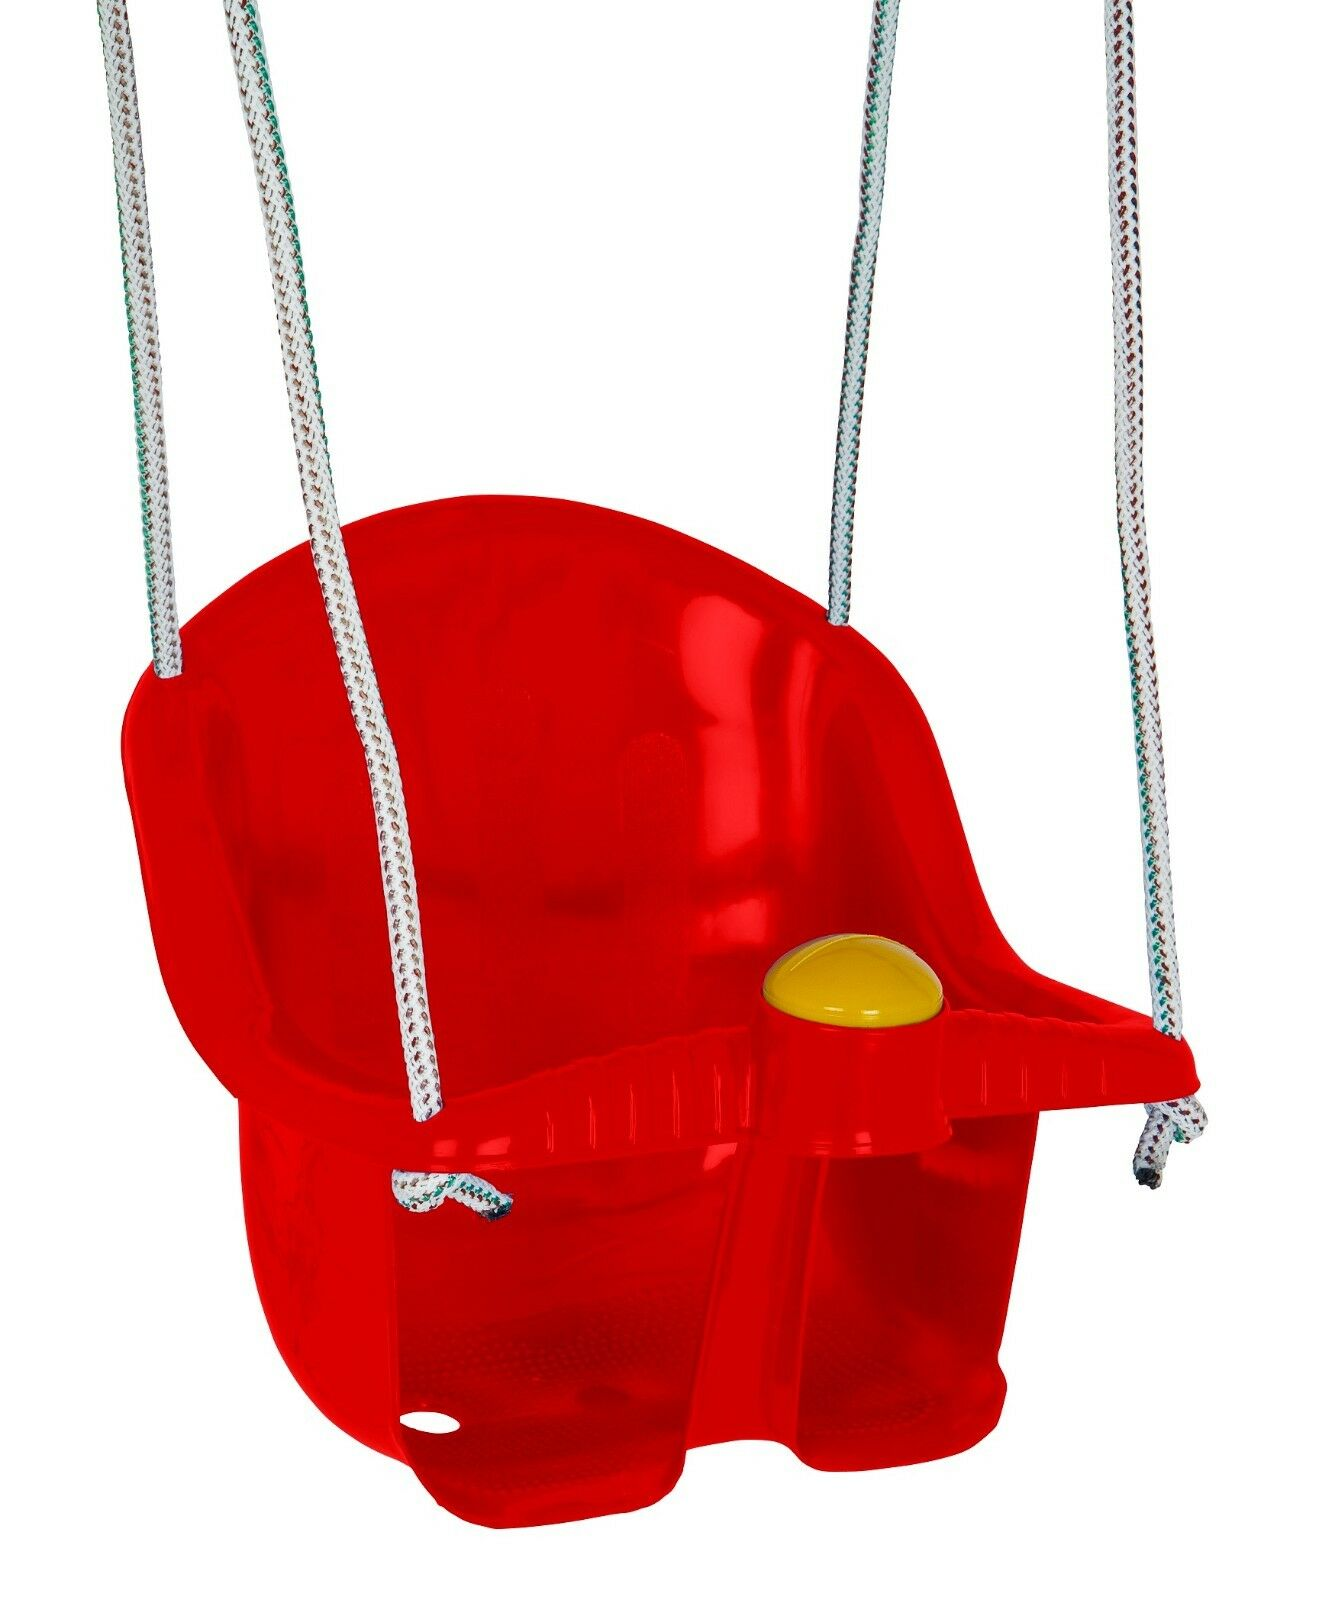 Dolu Childrens Outdoor Garden Swing Seat With Rope And Mounting Rings Toy Red